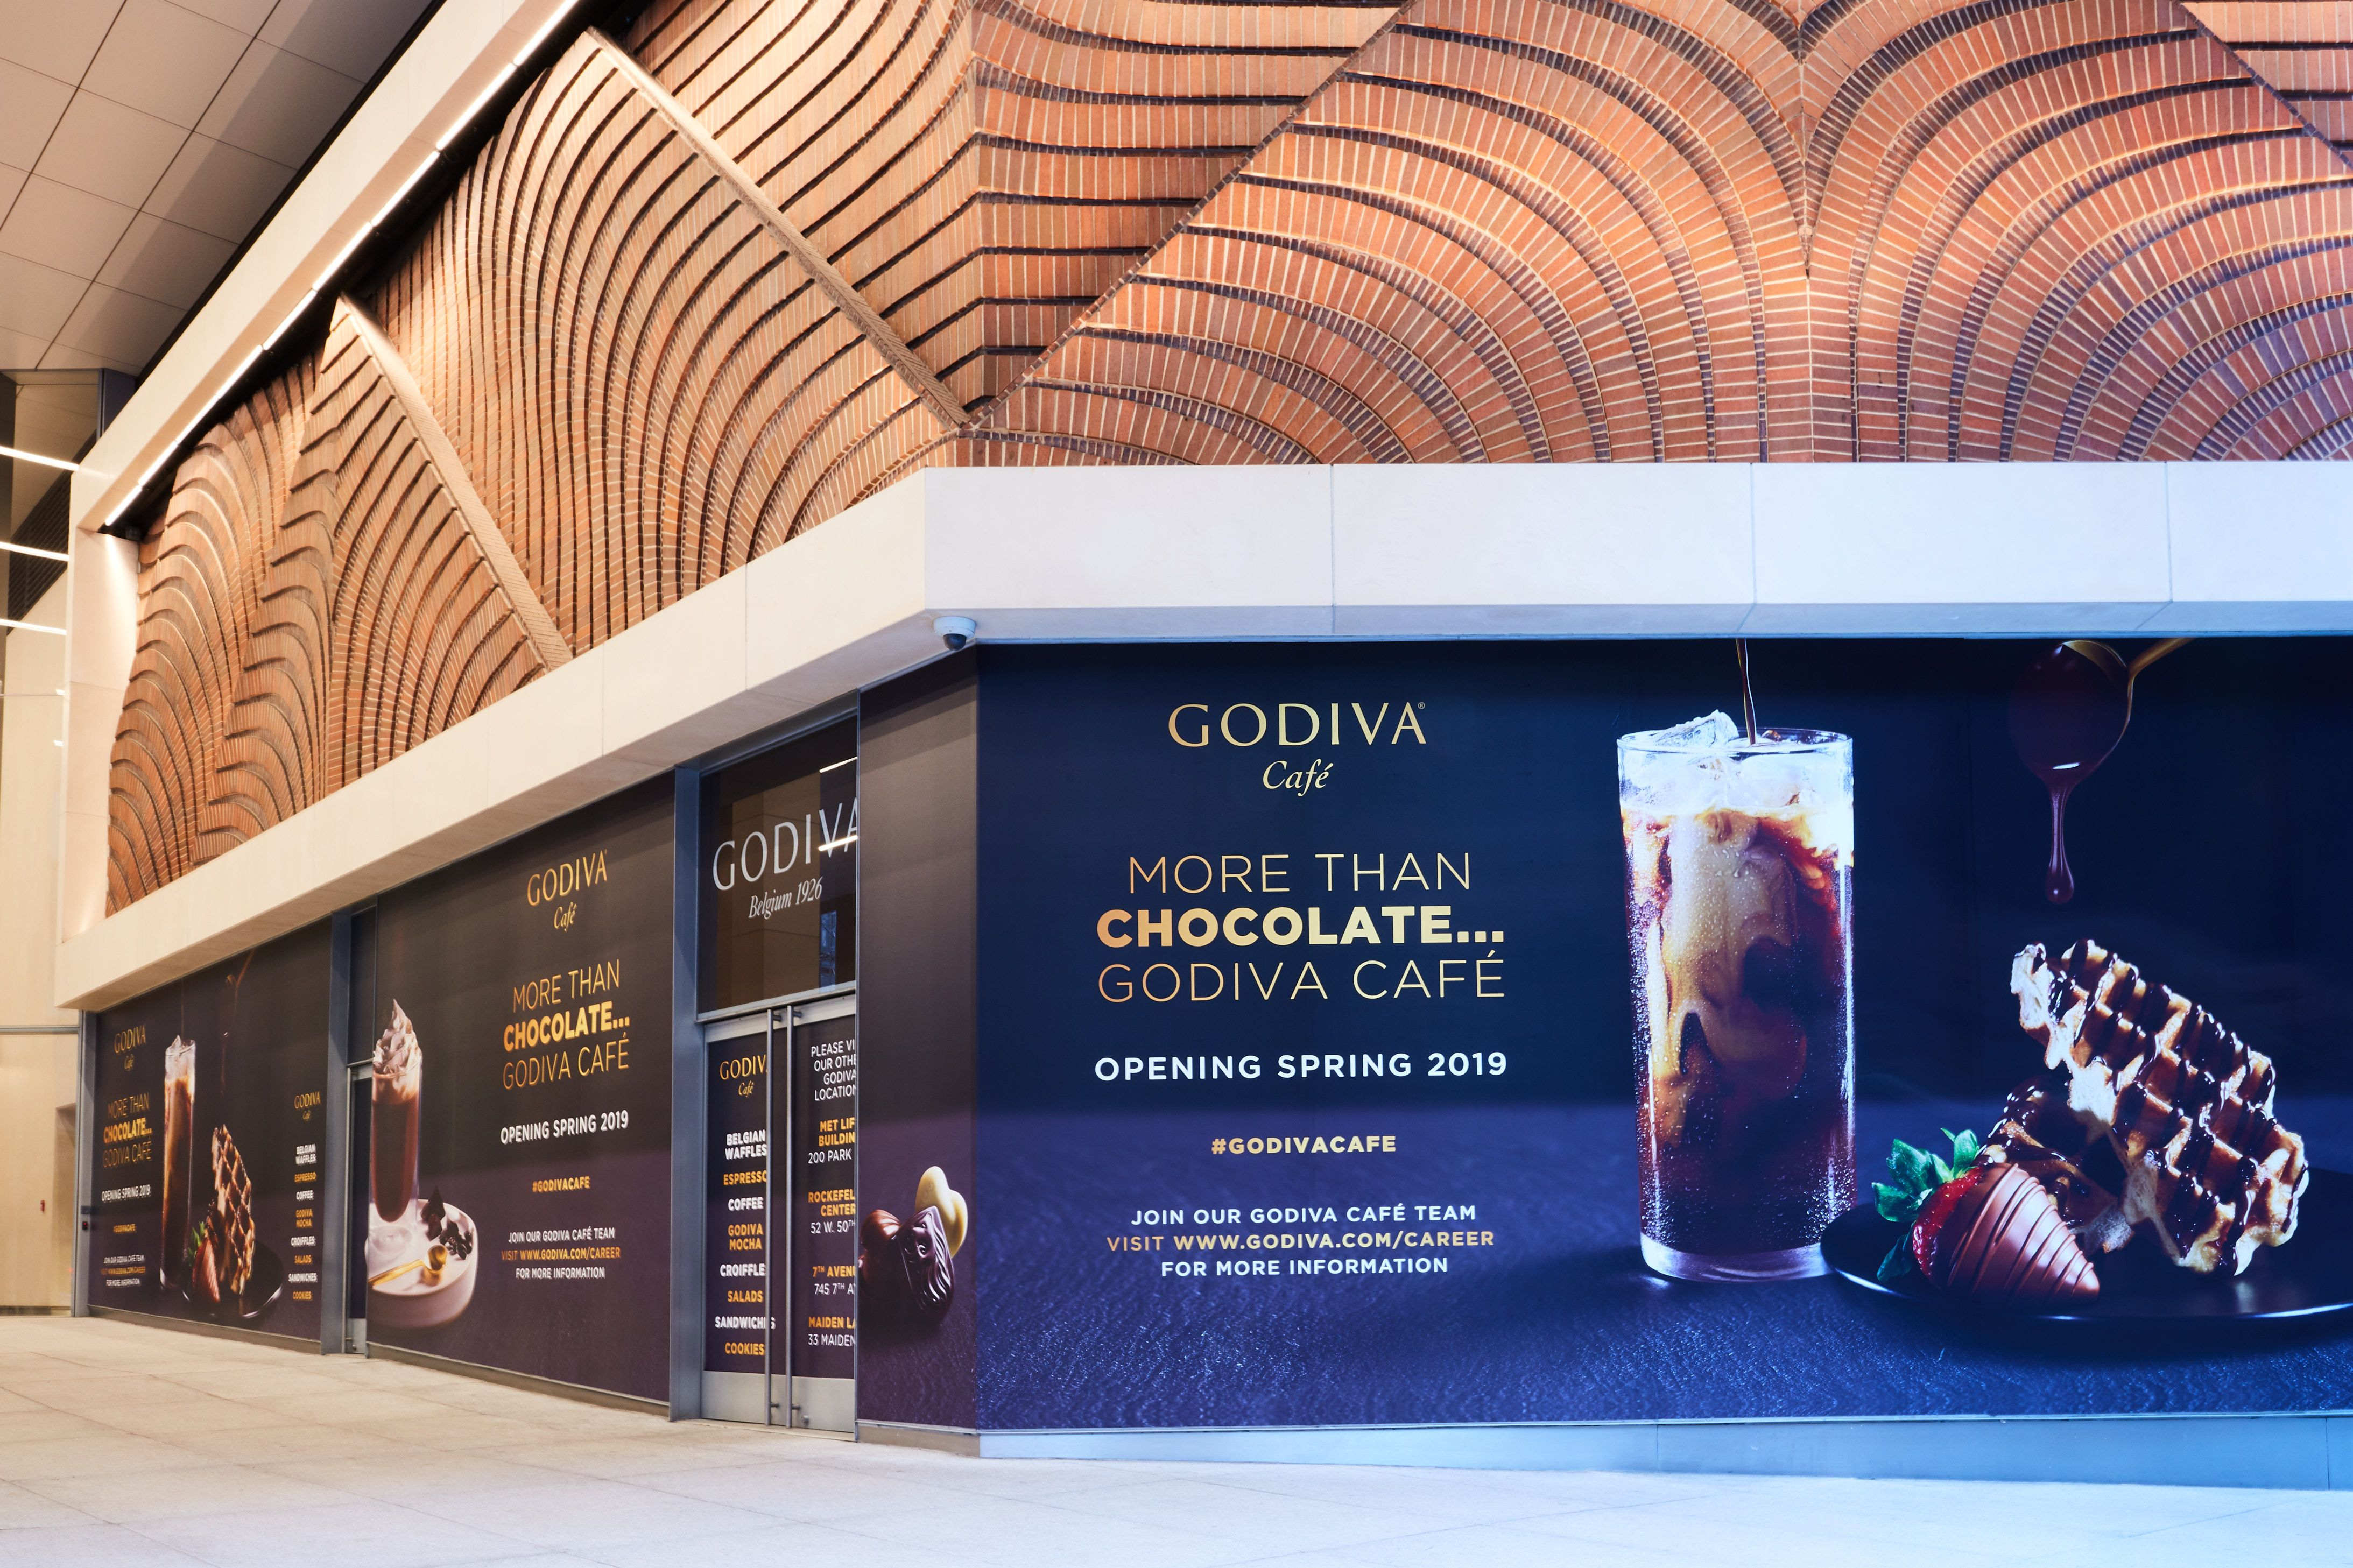 Godiva Is Opening Its First Café In The U.S, Complete With All The Sweet Treats You Could Ever Want